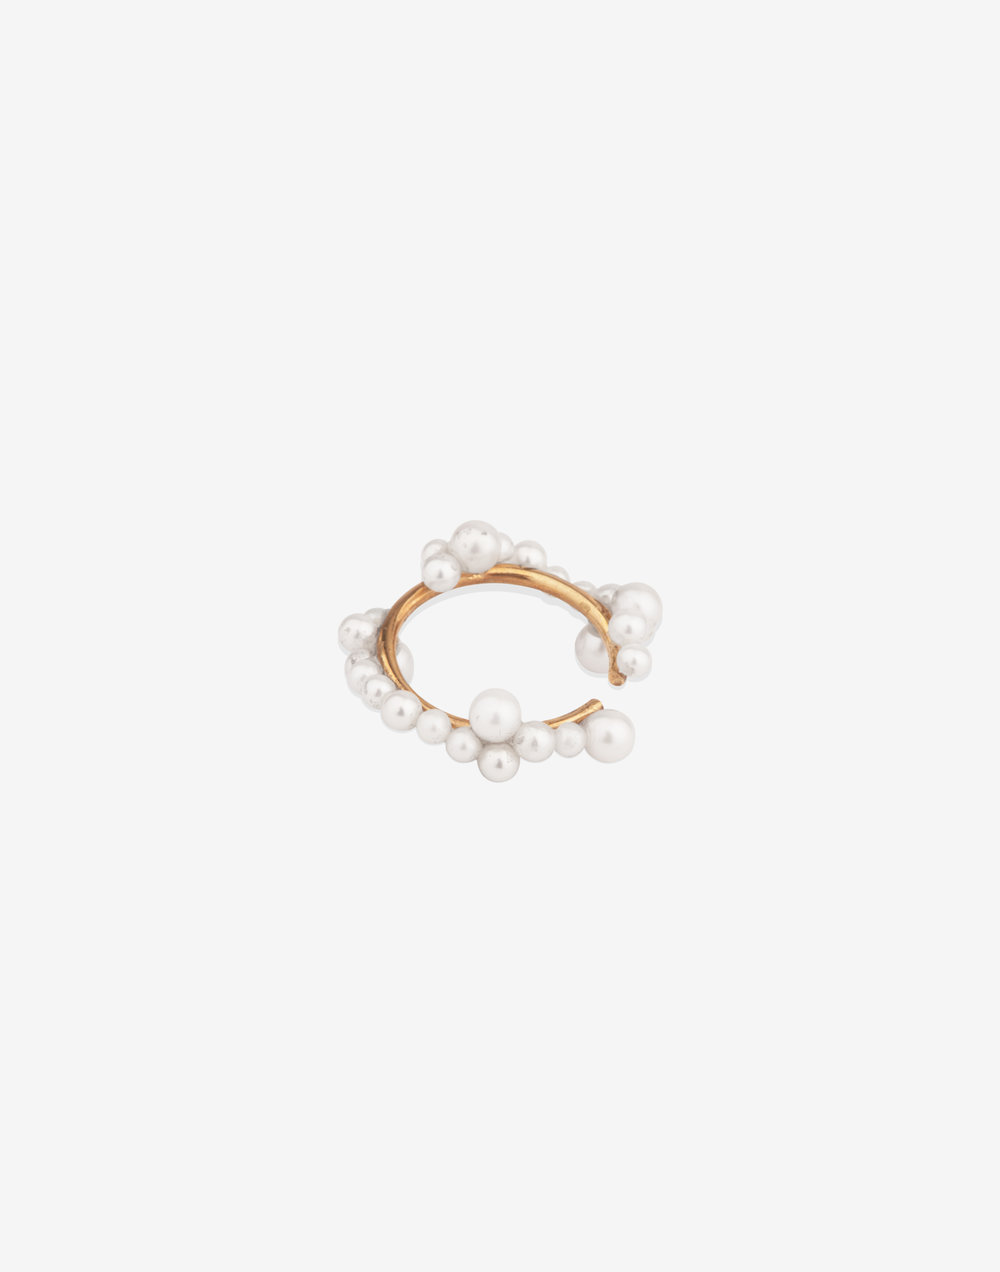 Completedworks-Tied-18ct-Yellow-Gold-plating-on-Silver-Ear-Cuff-A1019-3.jpg